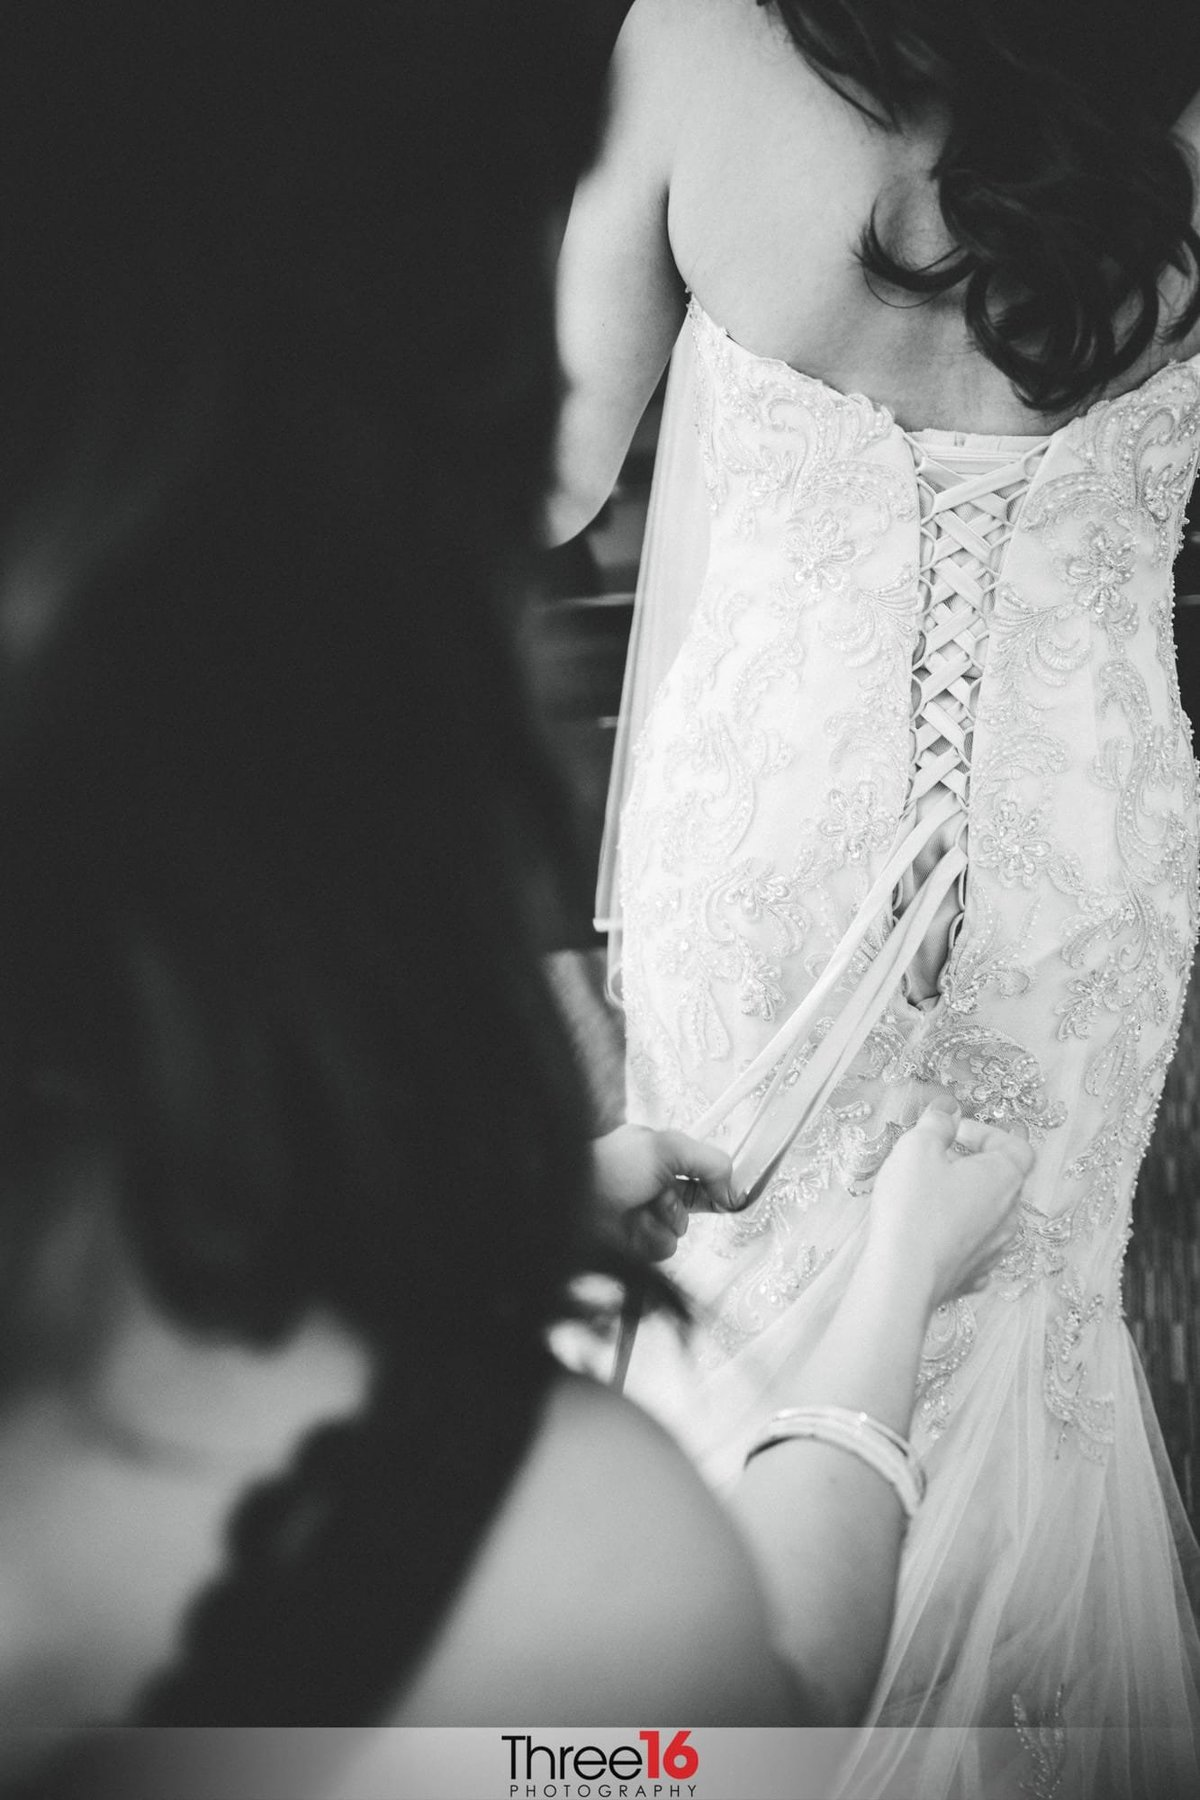 Bride having her wedding gown buttoned up